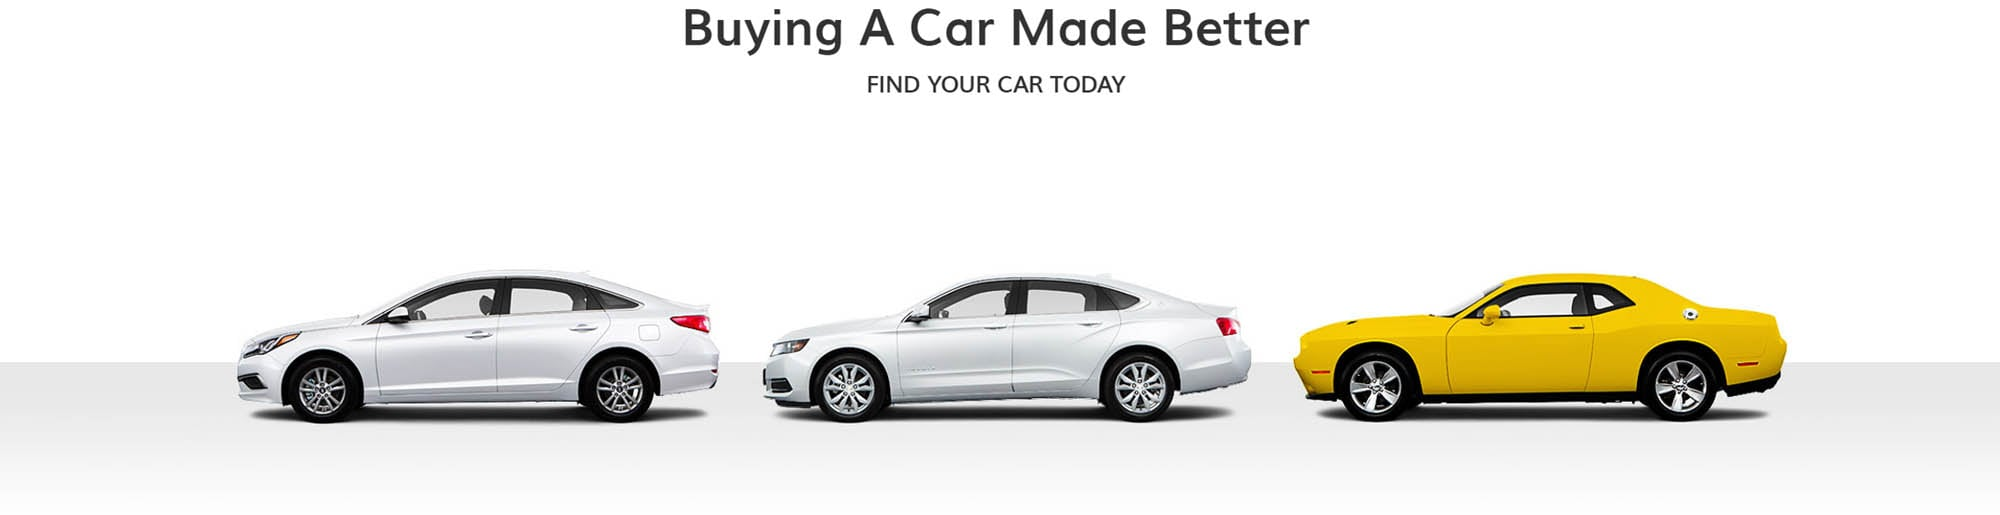 Hertz Car Sales | A Better Way to Buy Used Cars